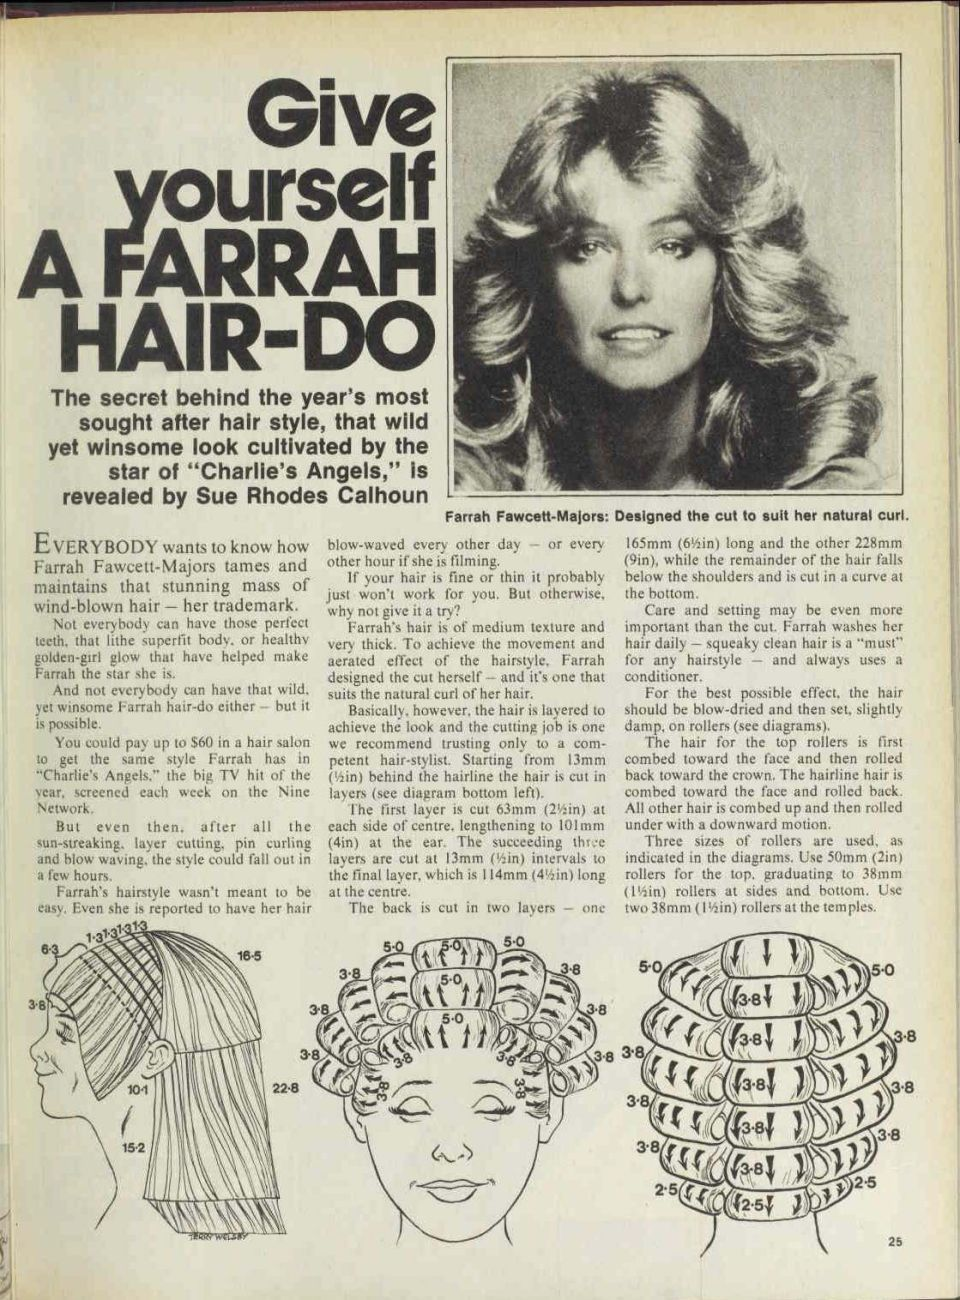 pin by pete on vintage hair howtos | pinterest | roller ...